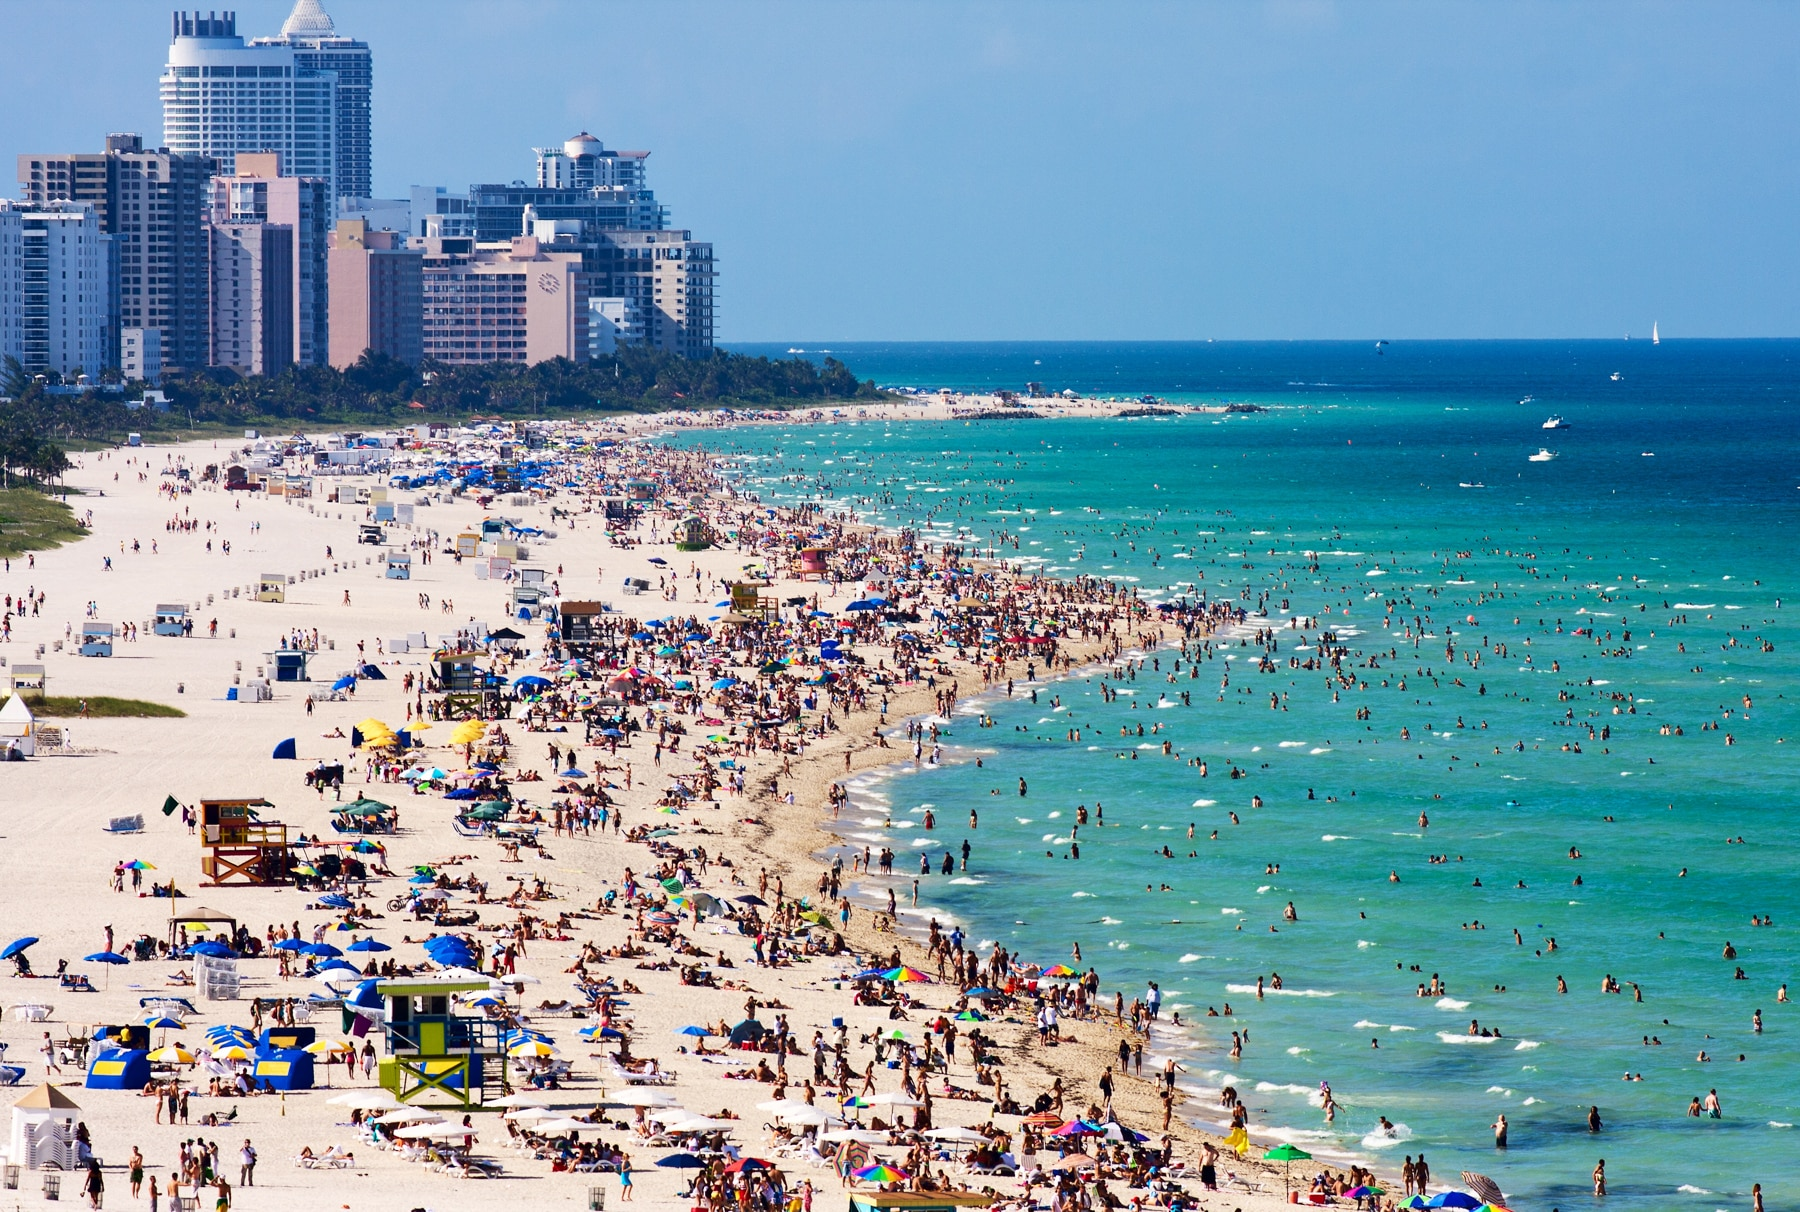 People sunbathing and swimming at beach, tall buildings in background (Shutterstock)